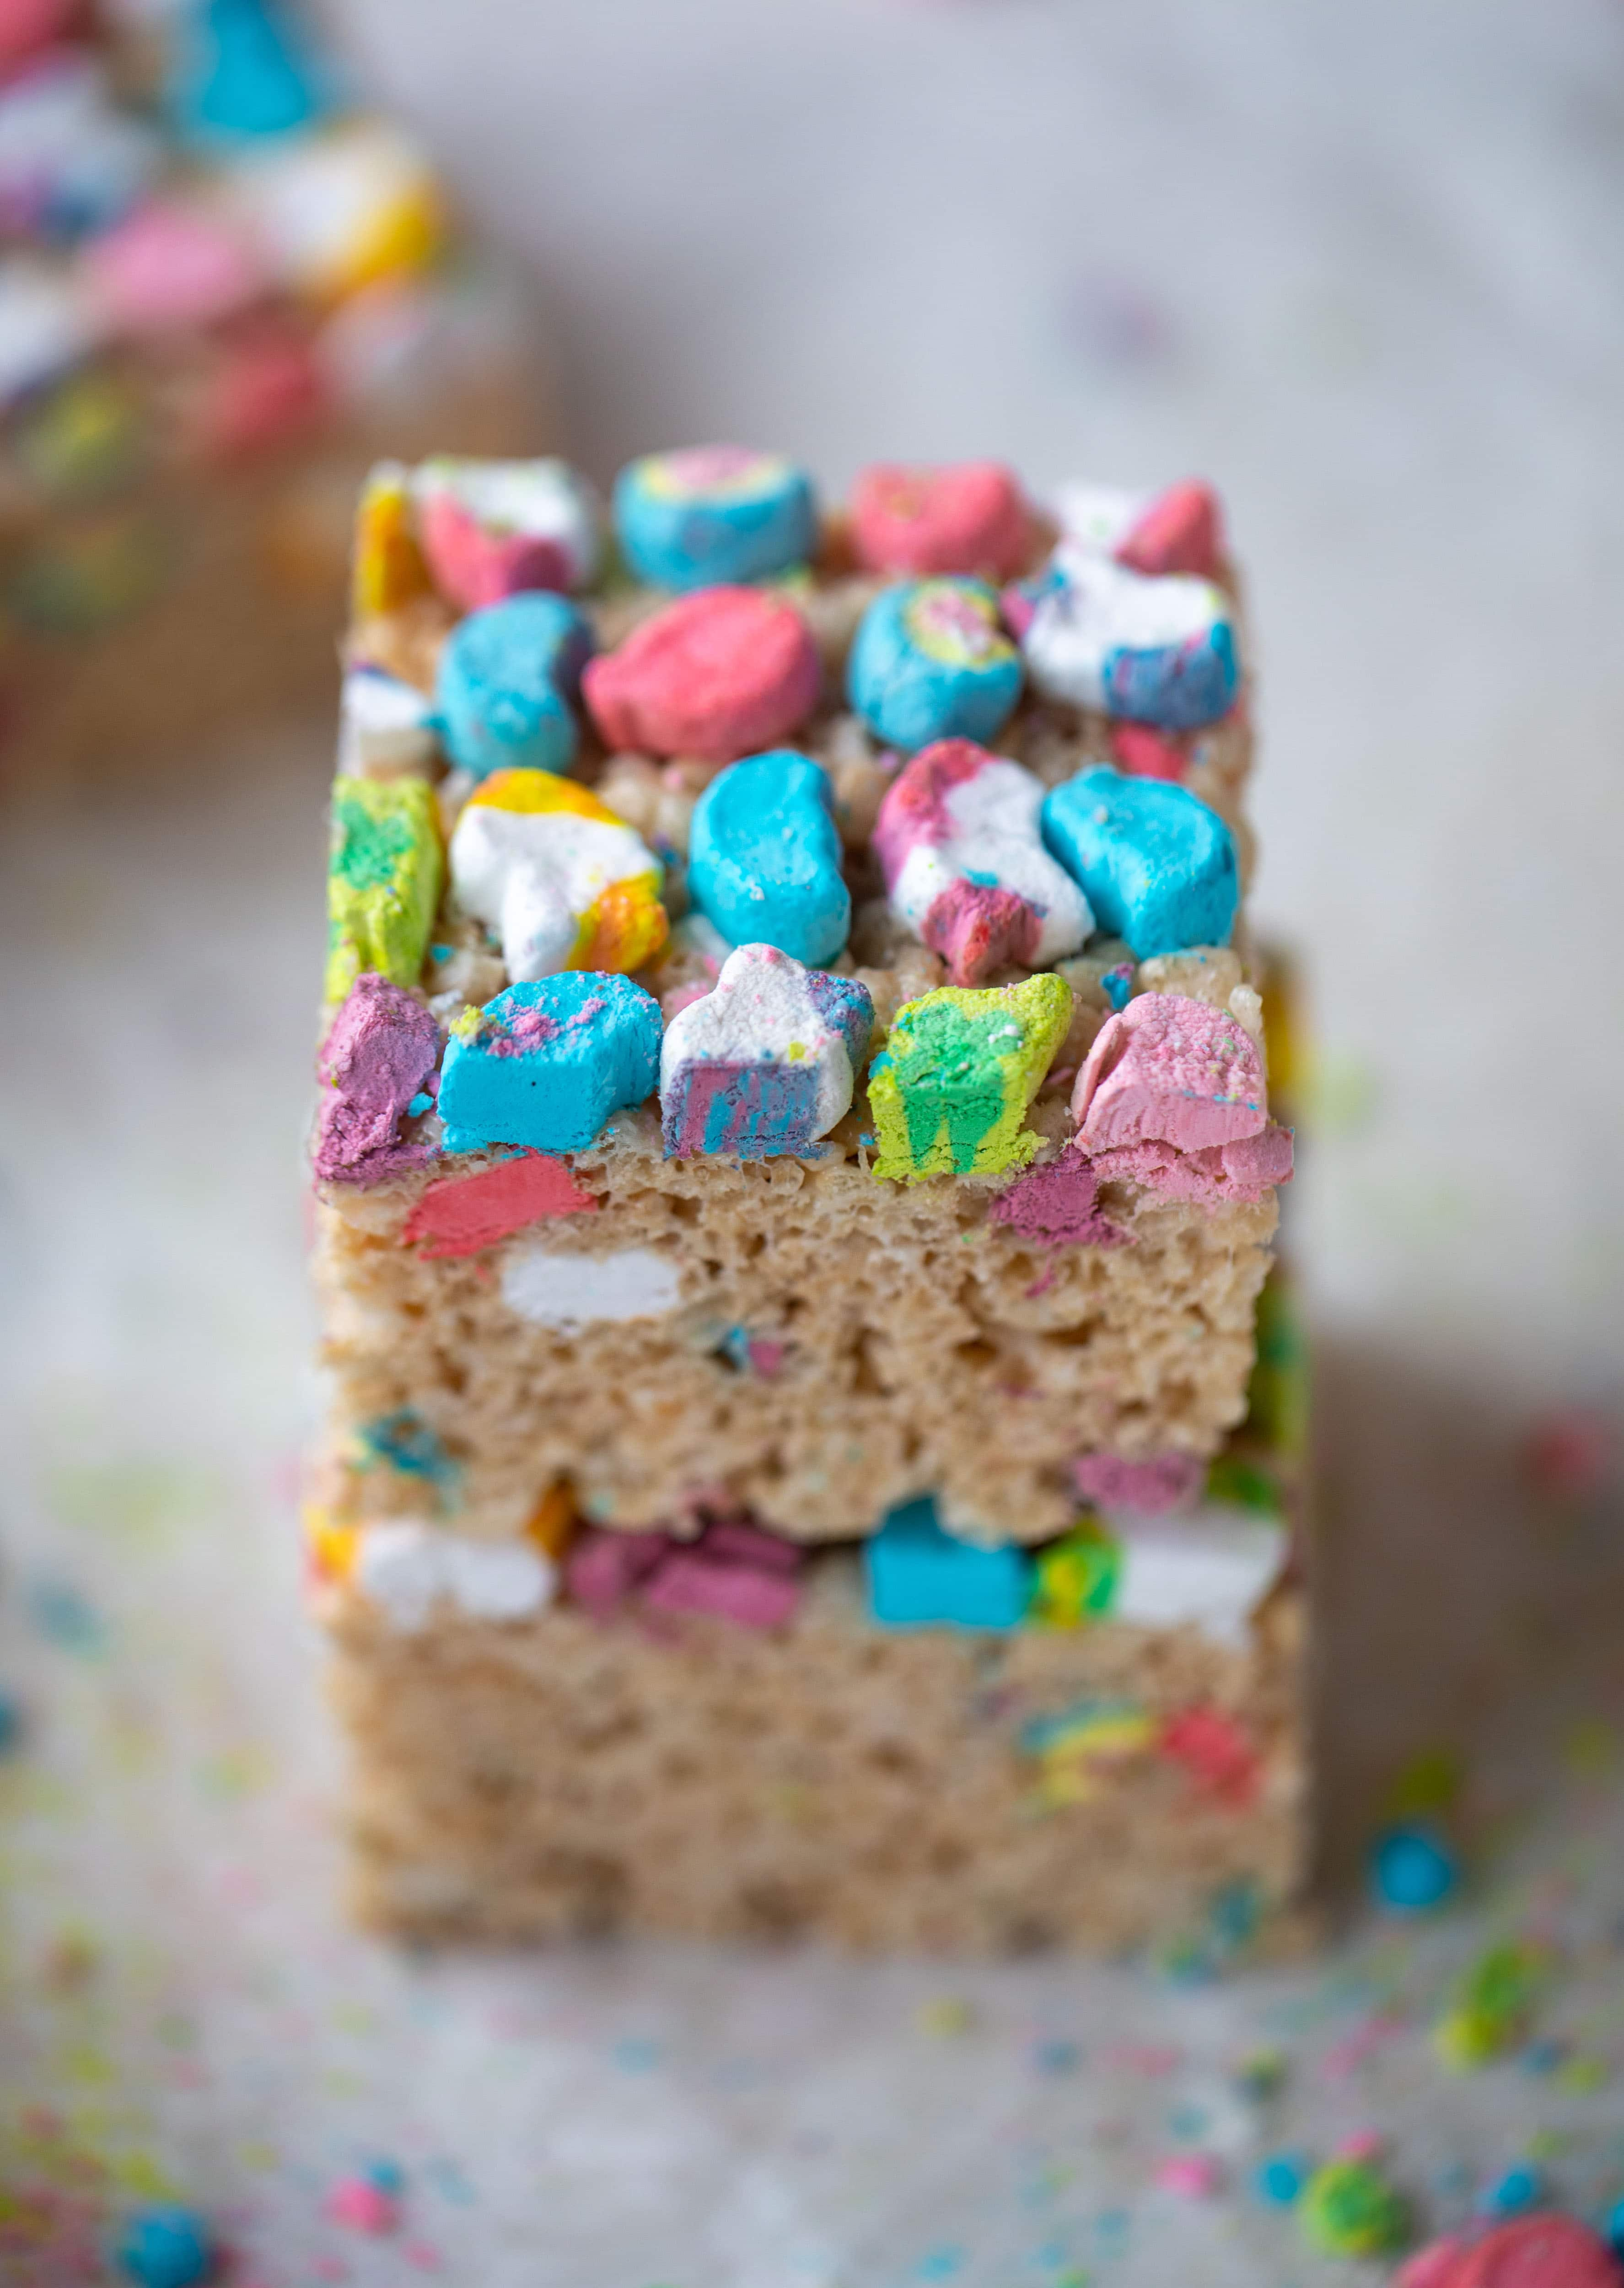 These lucky charms rice krispie treats are a throwback recipe to one of my favorite childhood treats! Here's a little festive twist for Saint Patrick's Day.